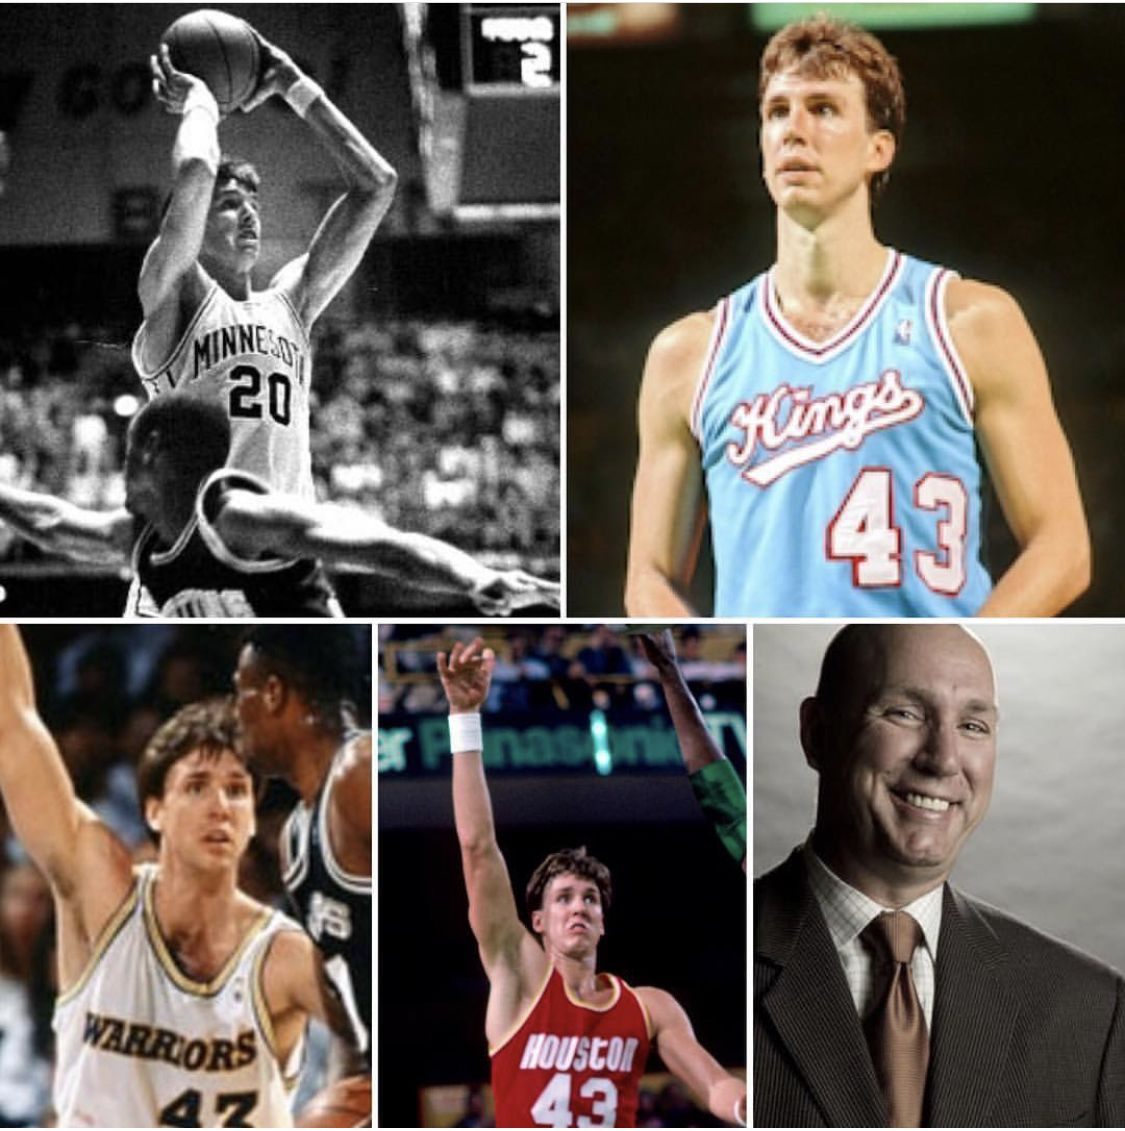 Happy birthday to former gopher player, NBA player